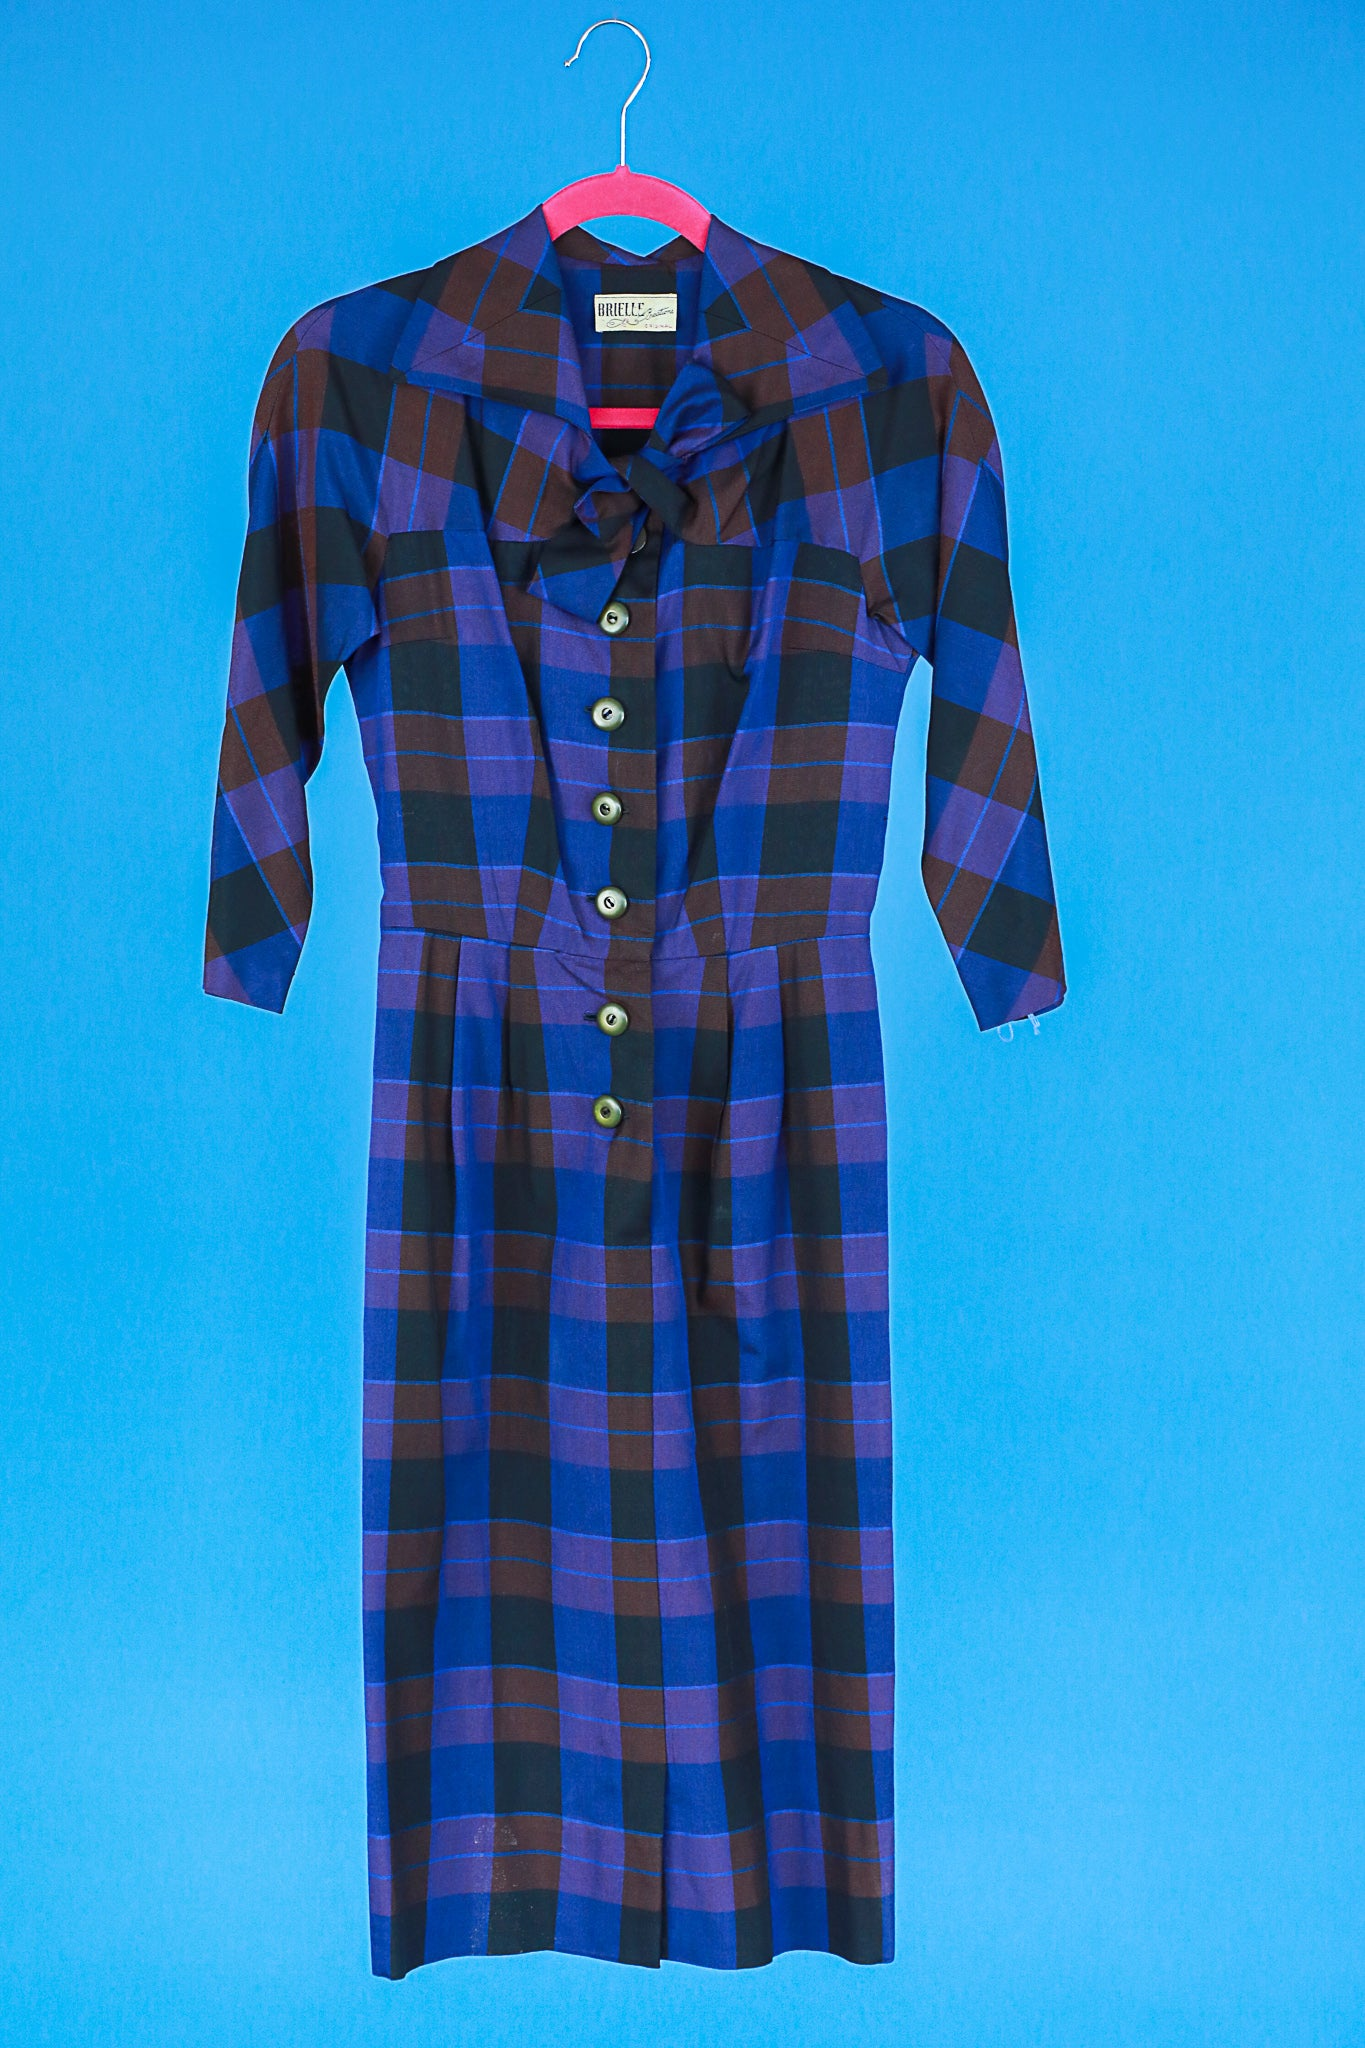 Plaid 1950s dress by Brielle